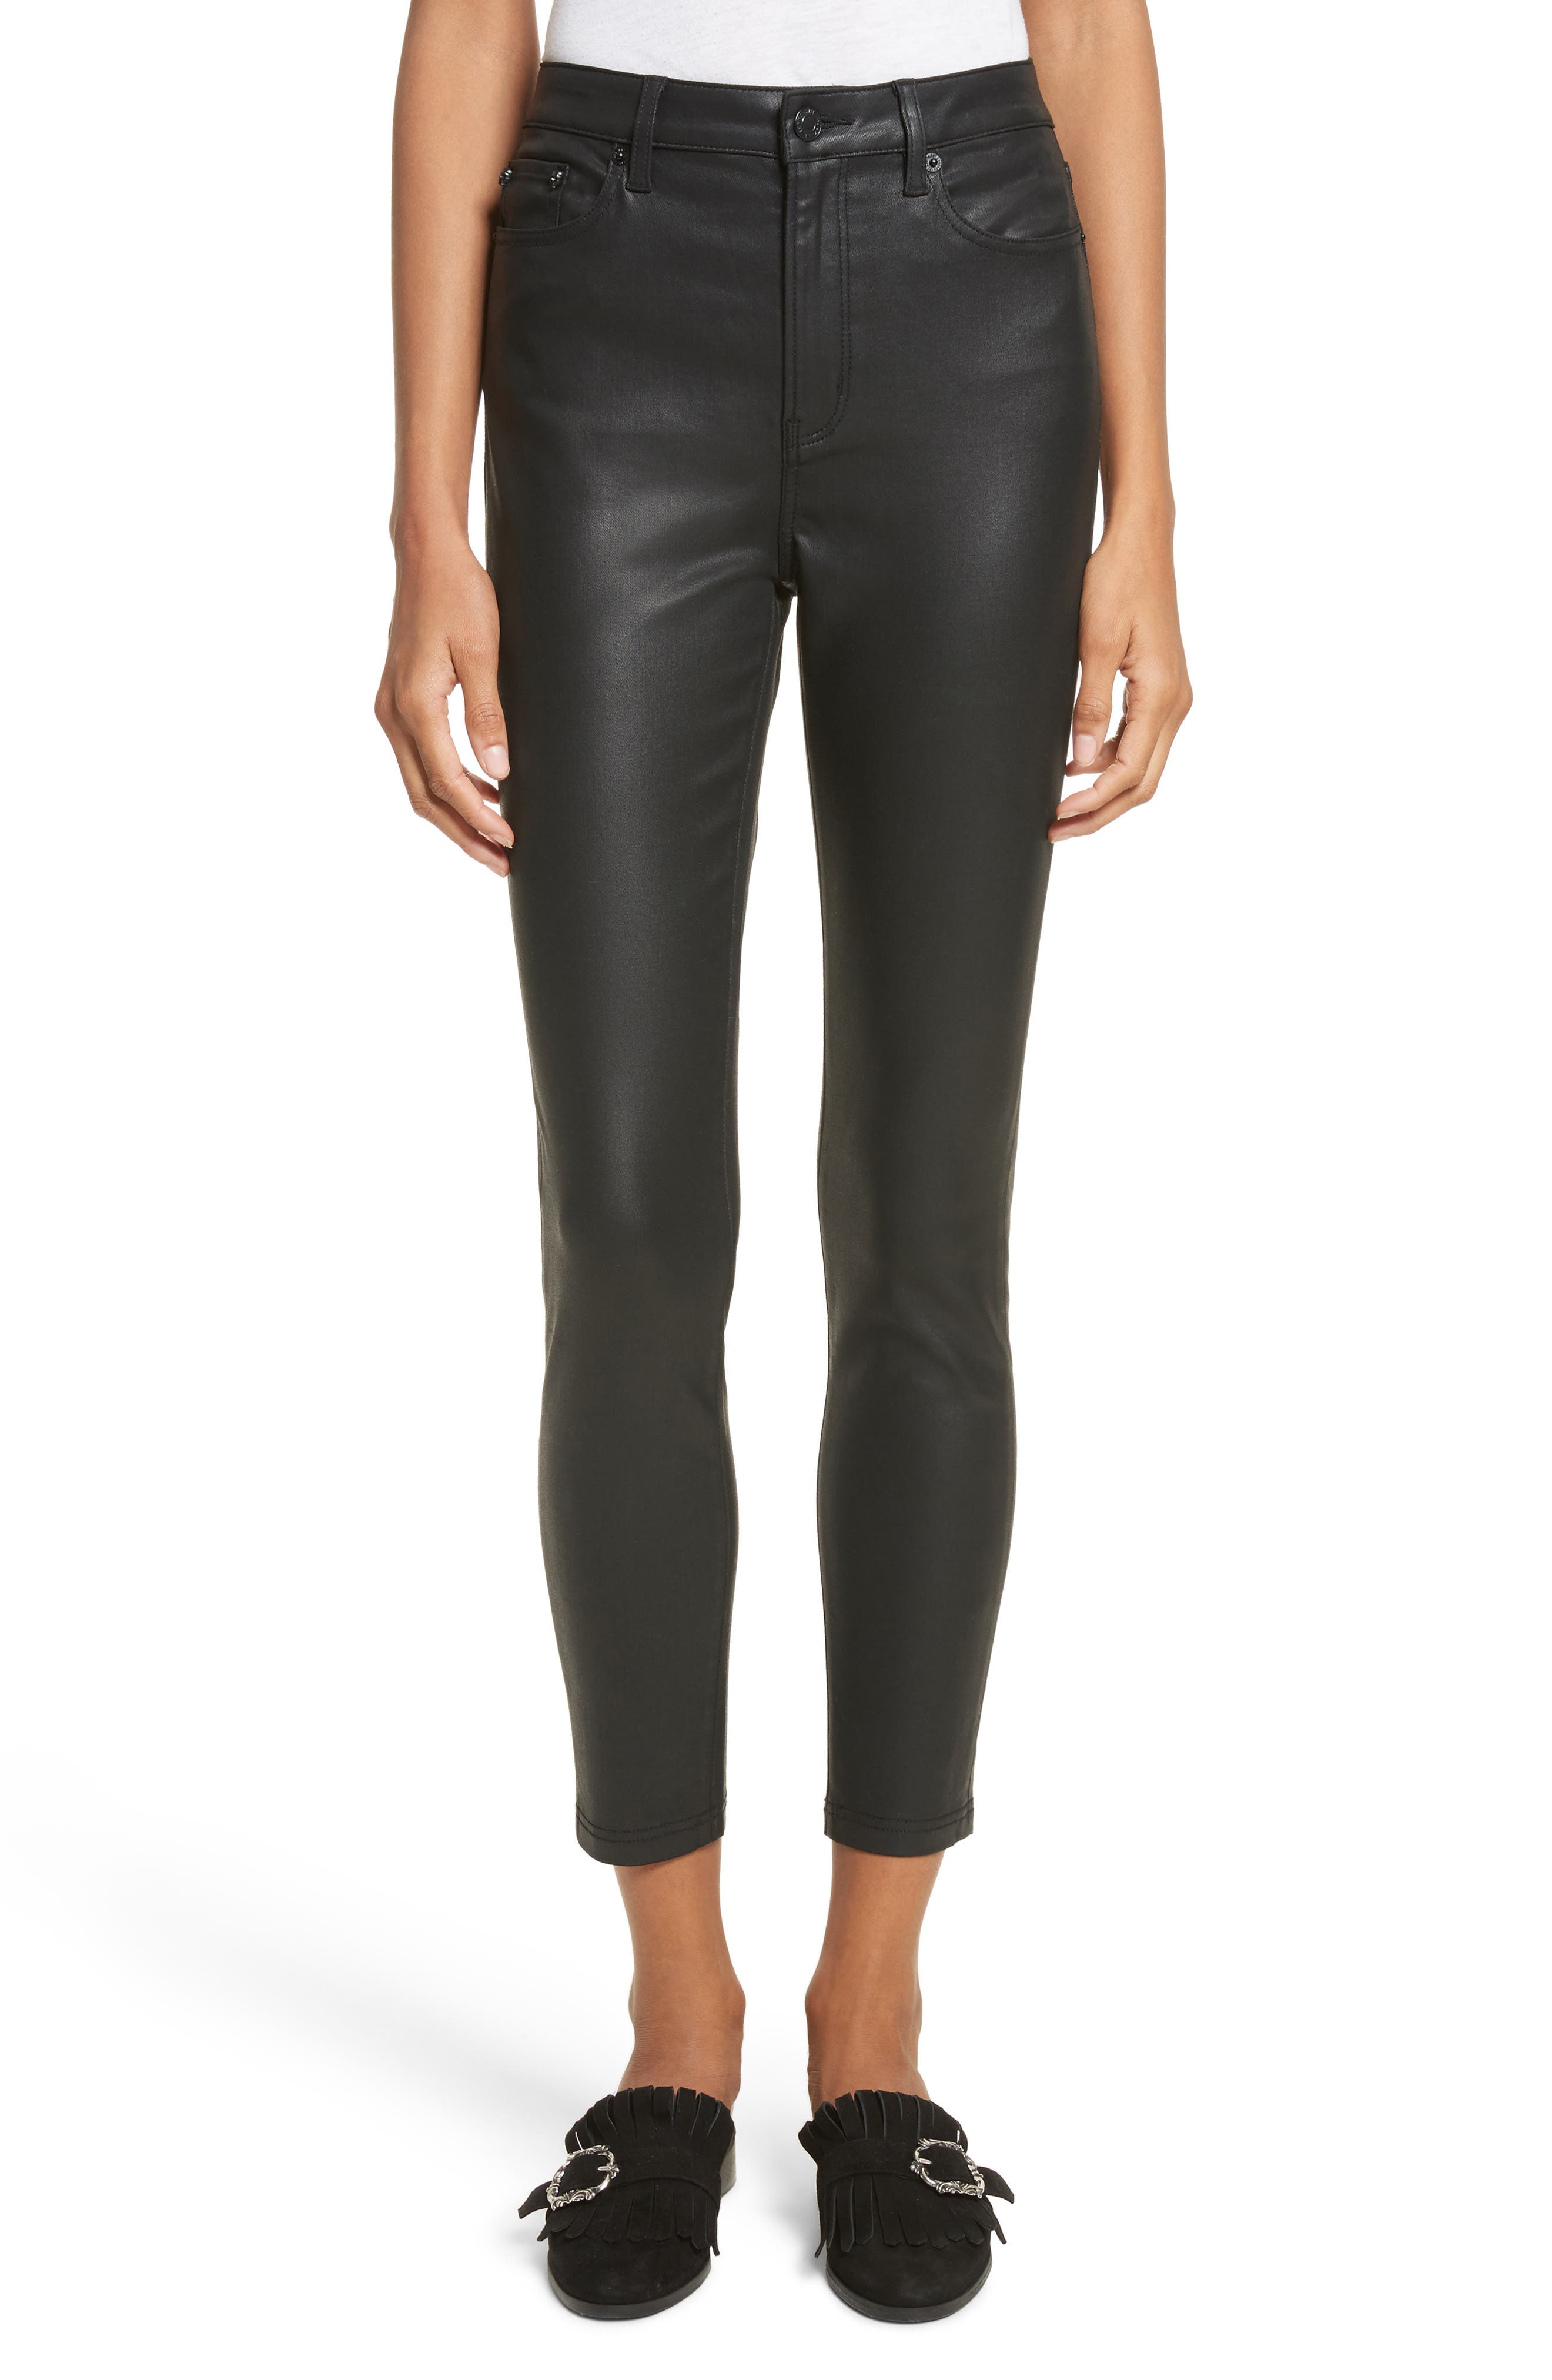 The Kooples Coated Stretch Ankle Skinny Jeans